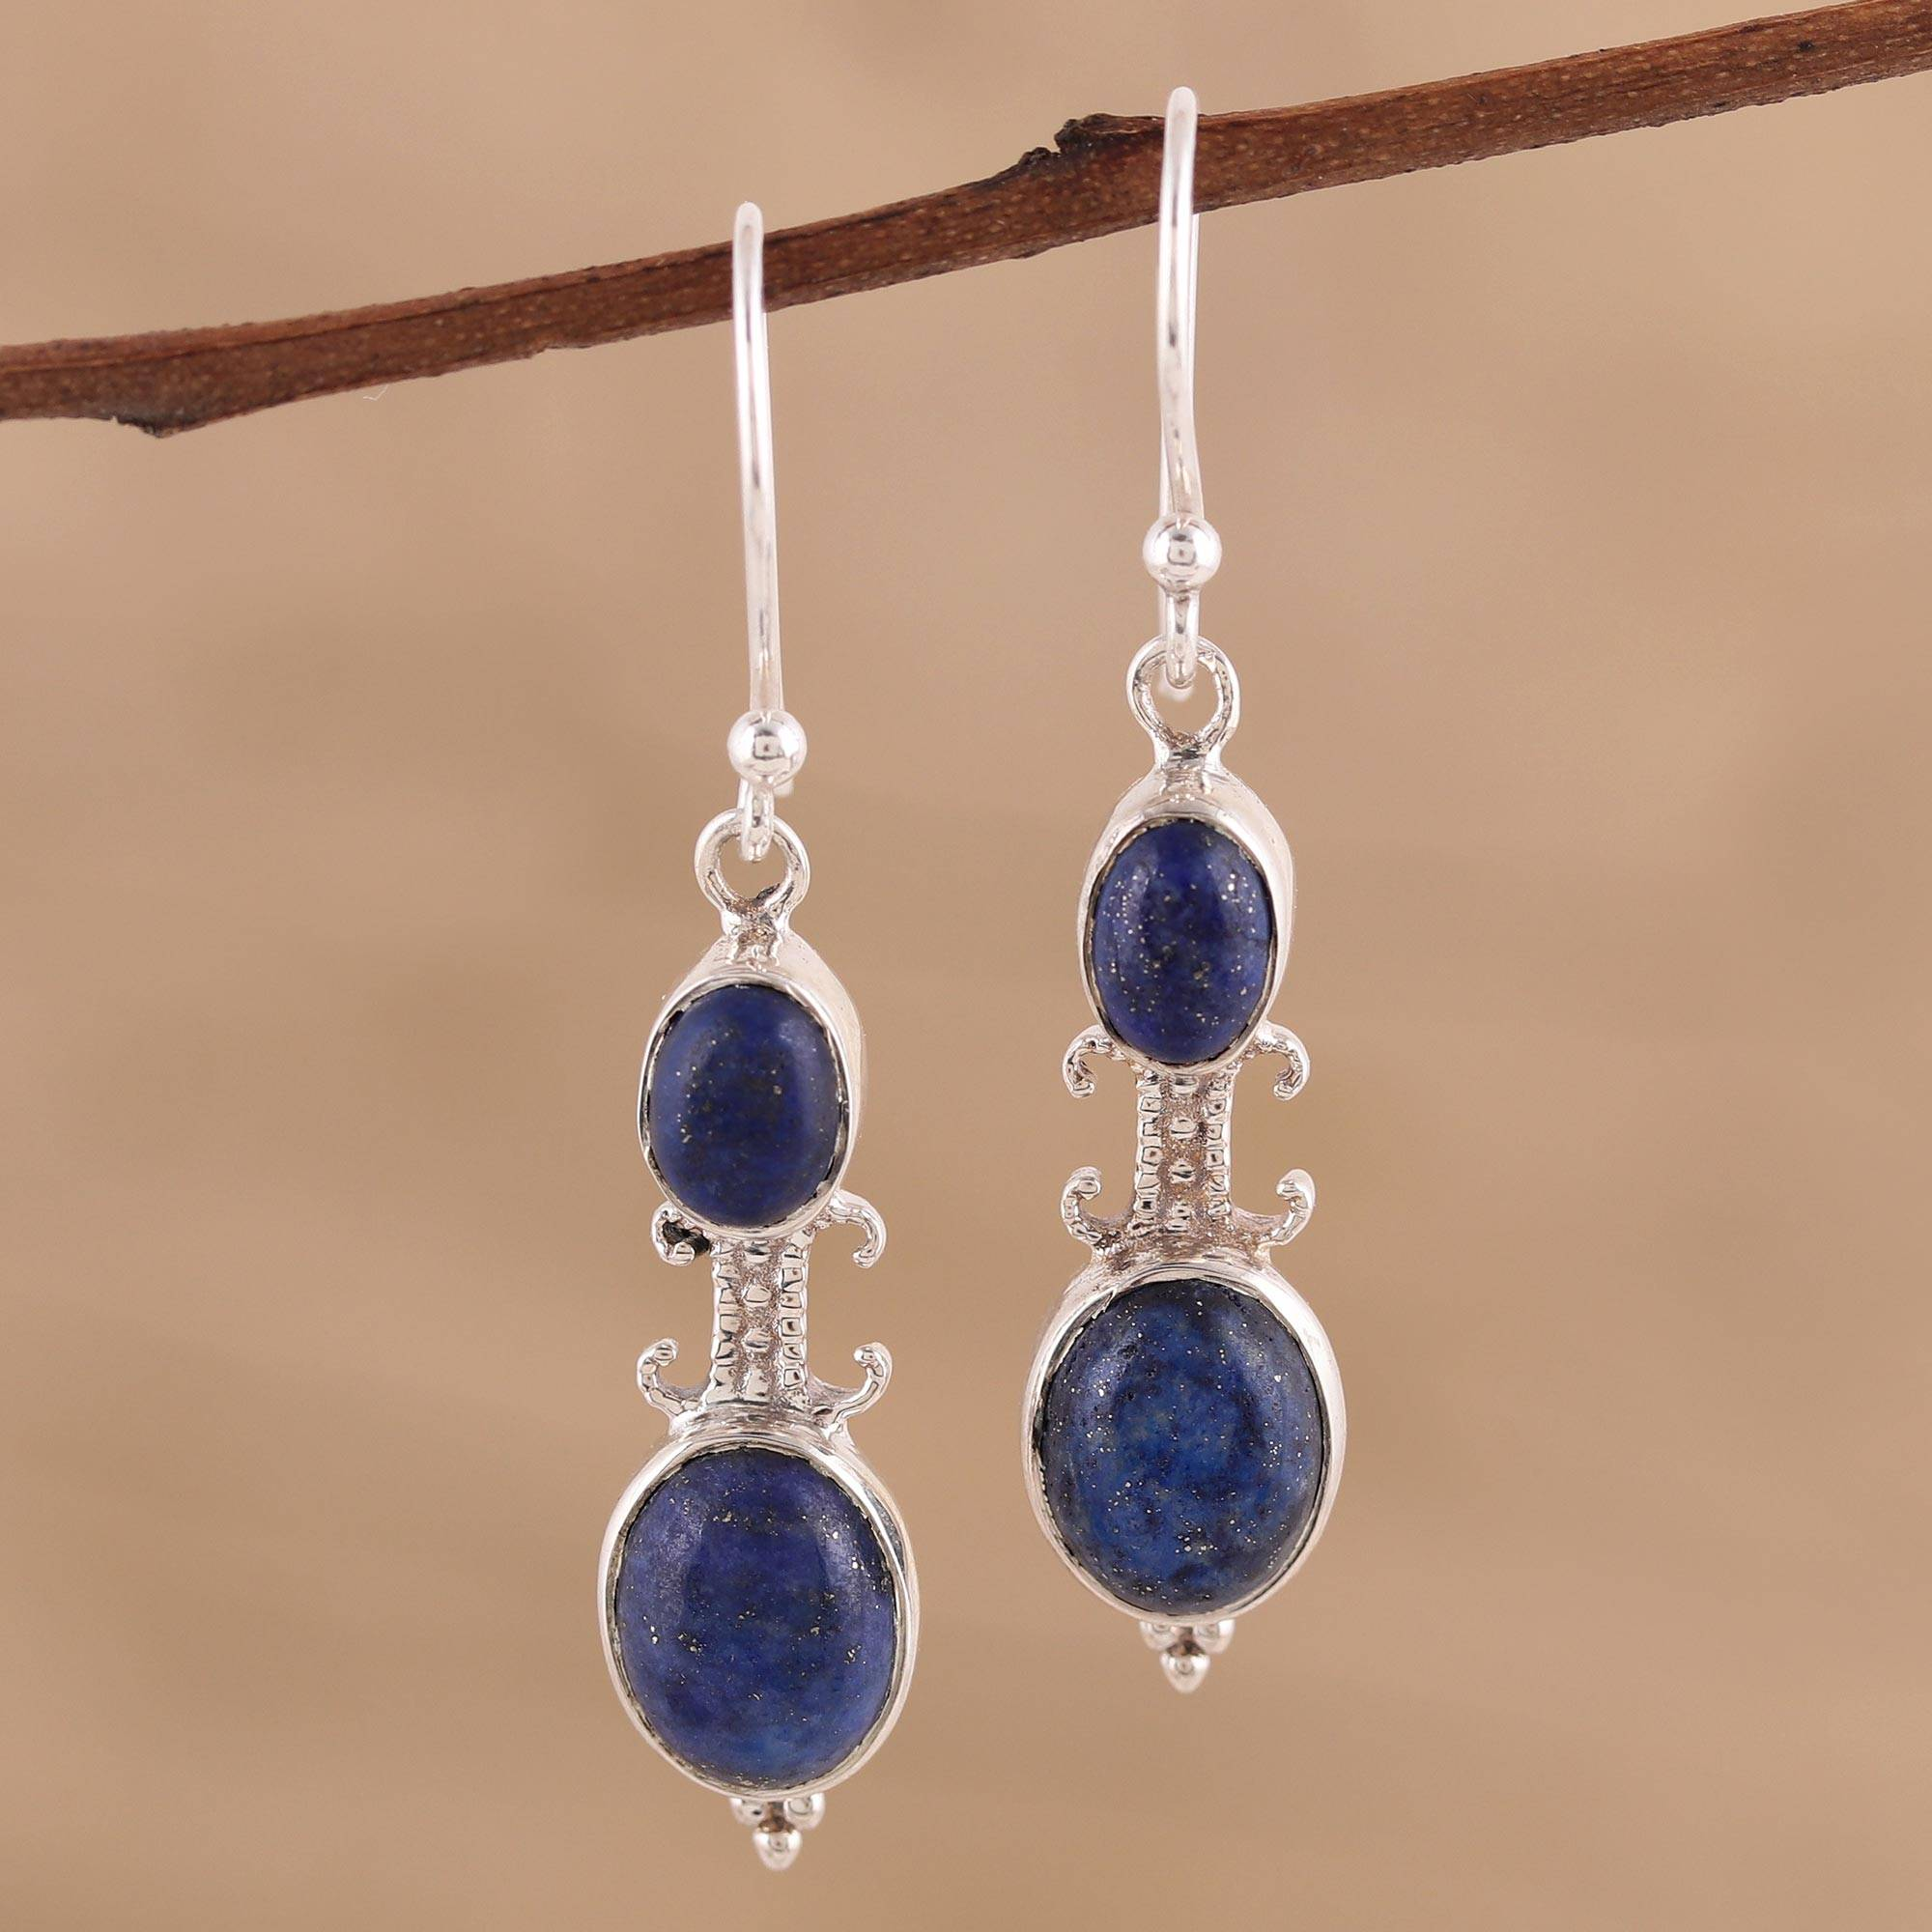 Earrings 925 sterling silver with lapis lazuli